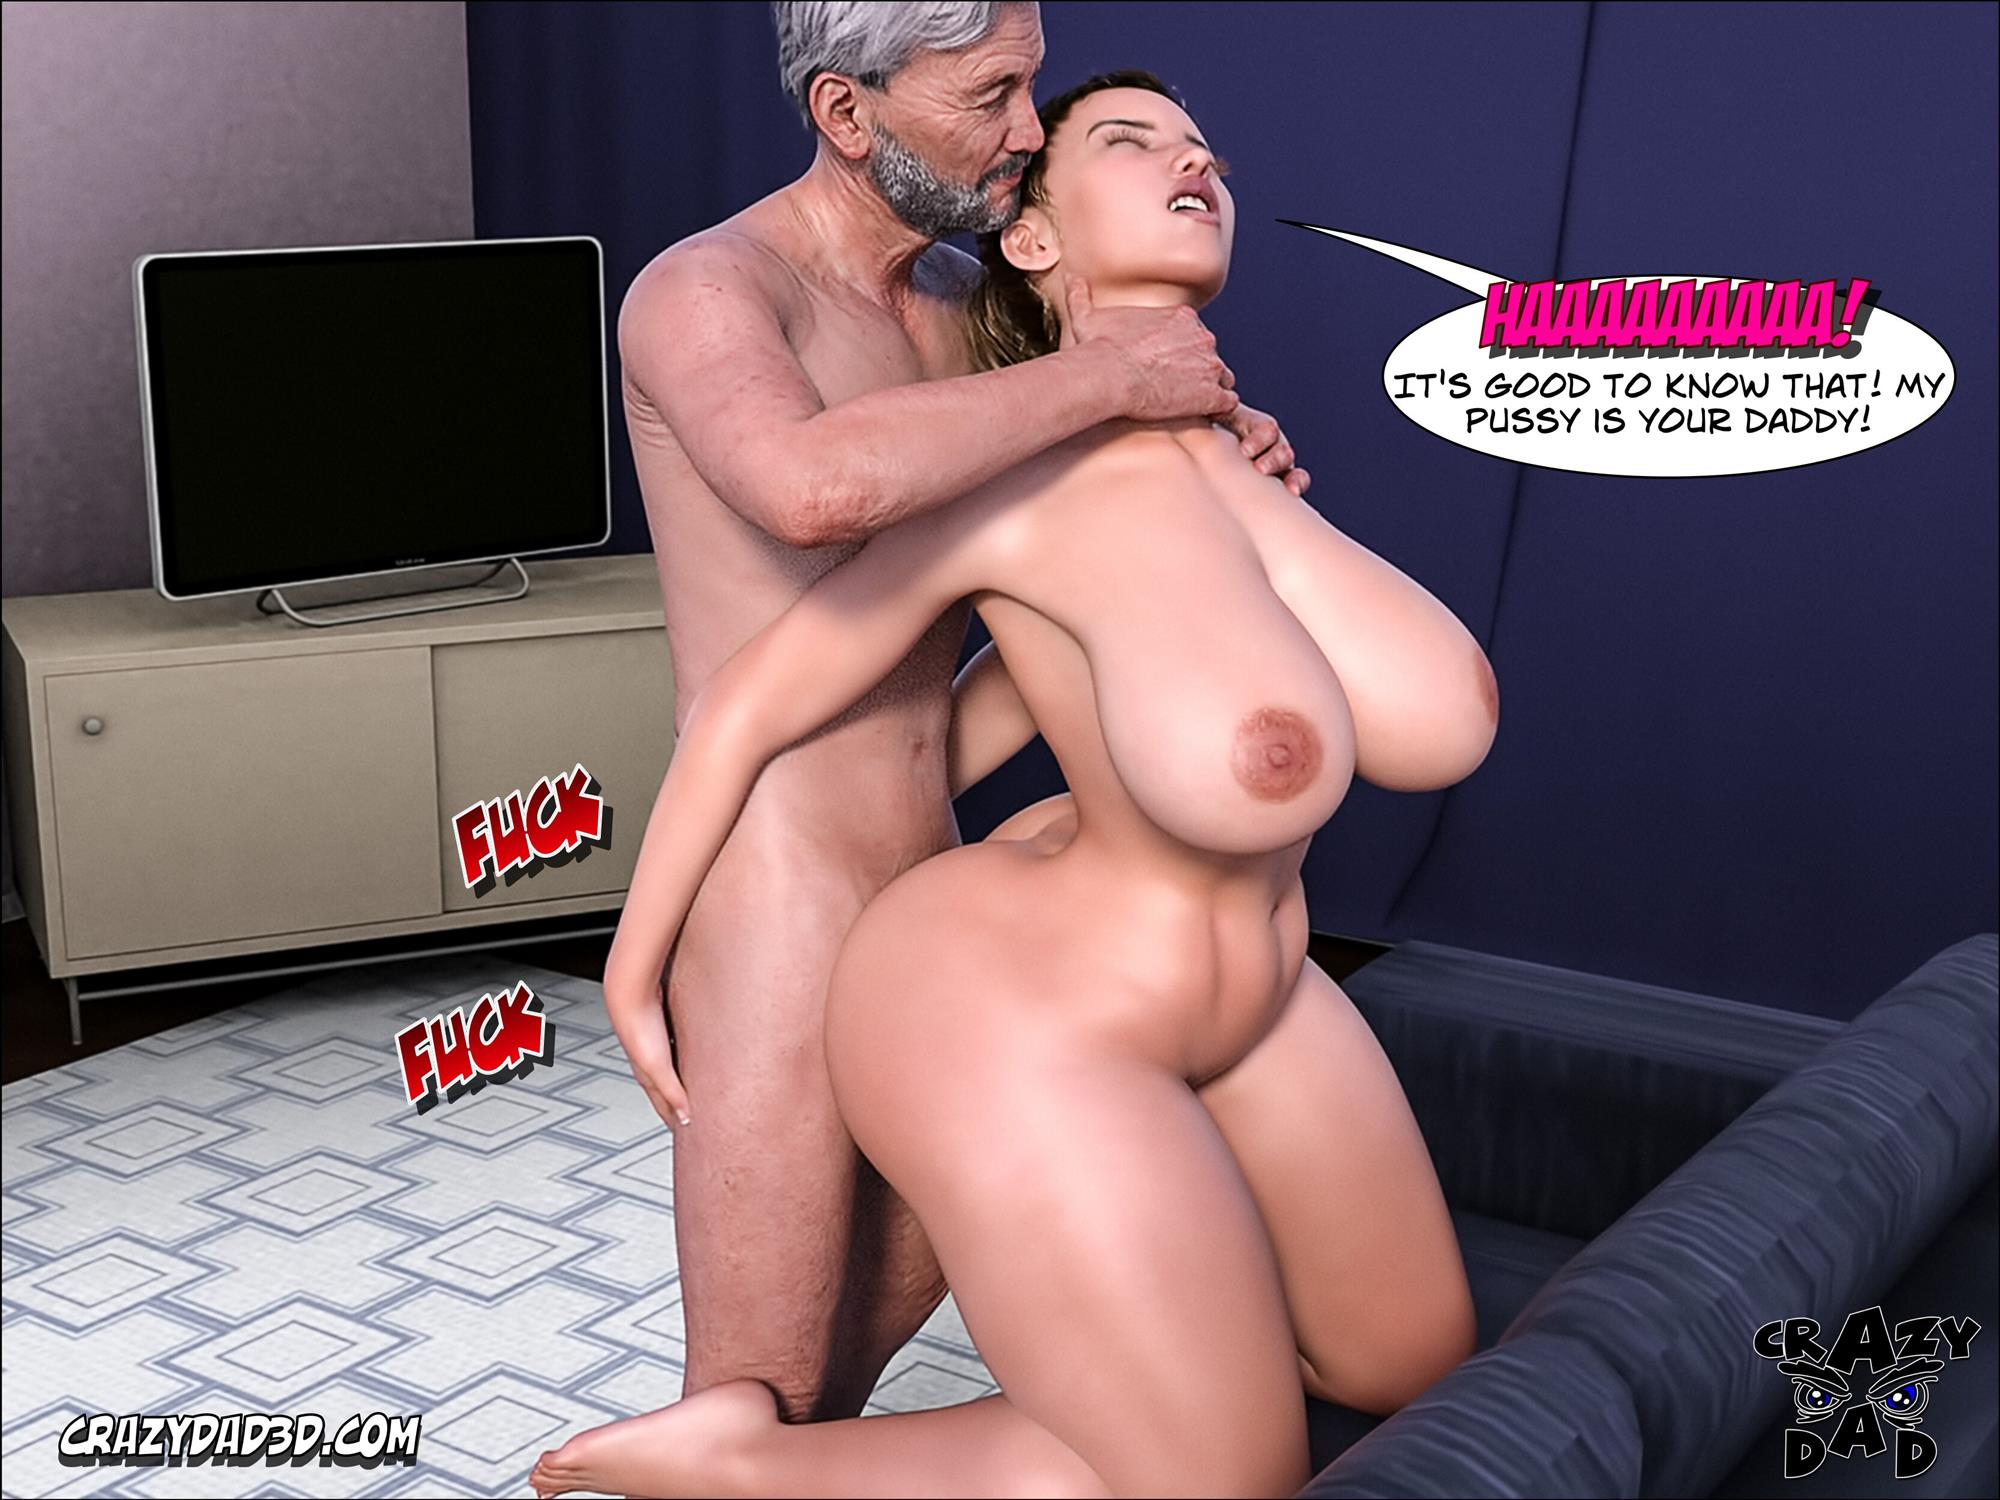 Father-in-Law at Home 10 [Crazy Dad 3D] - Foto 14